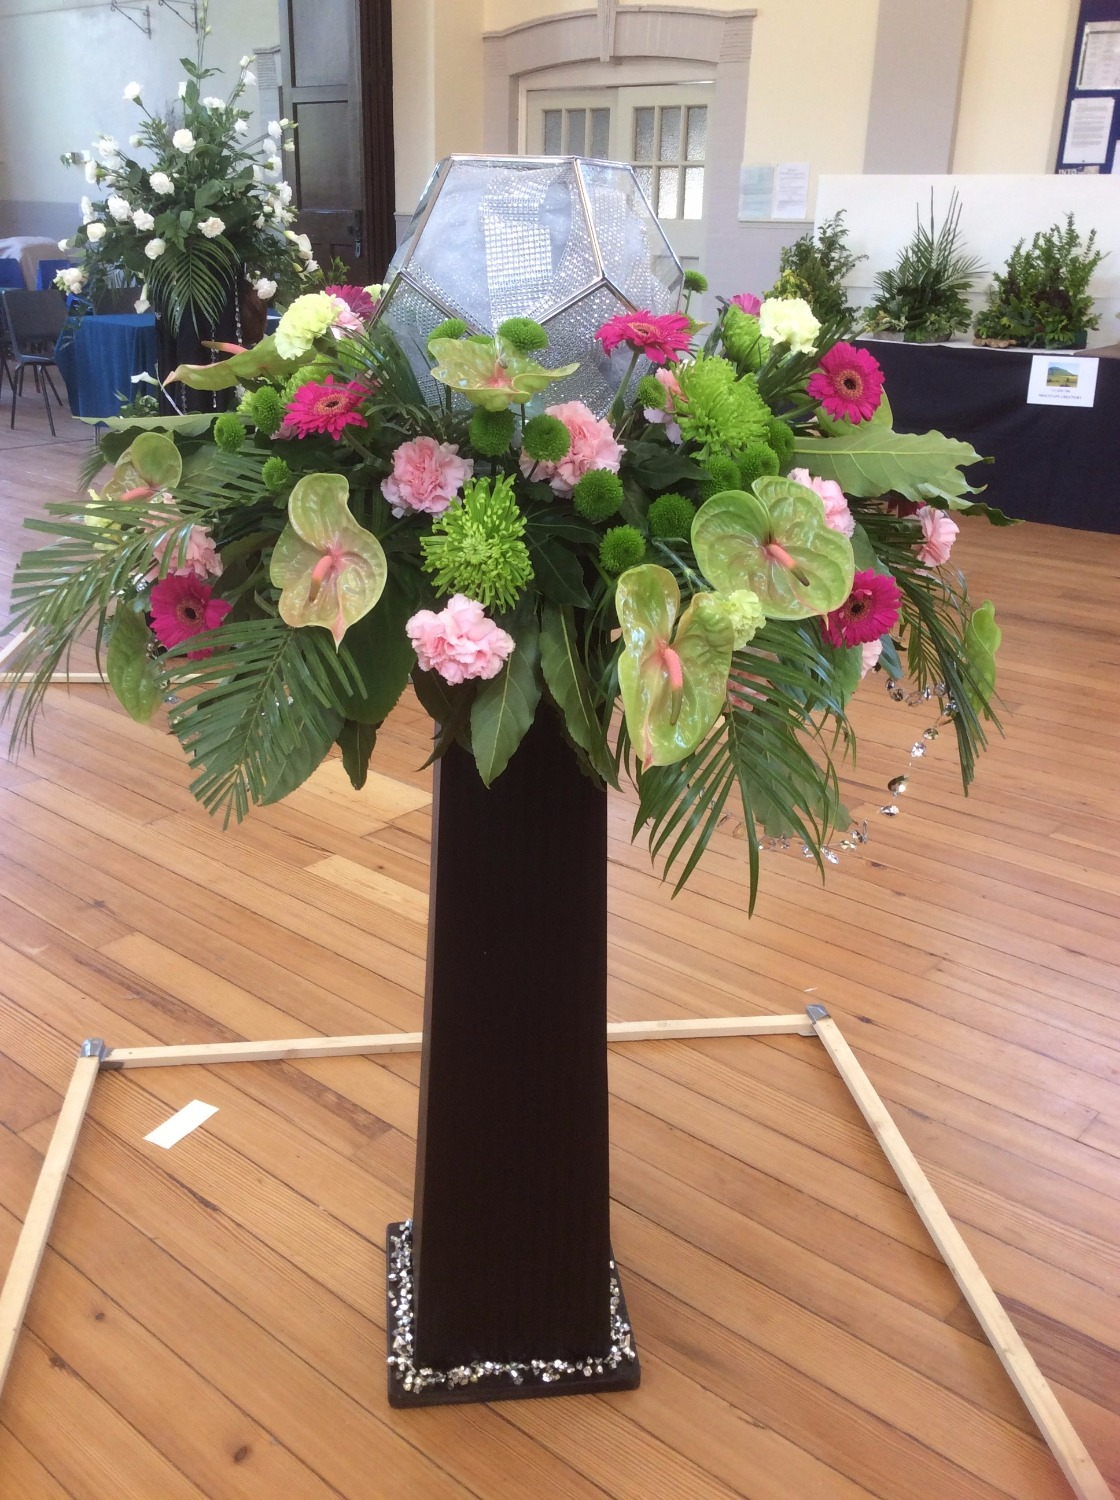 Nuneaton Flower Guild